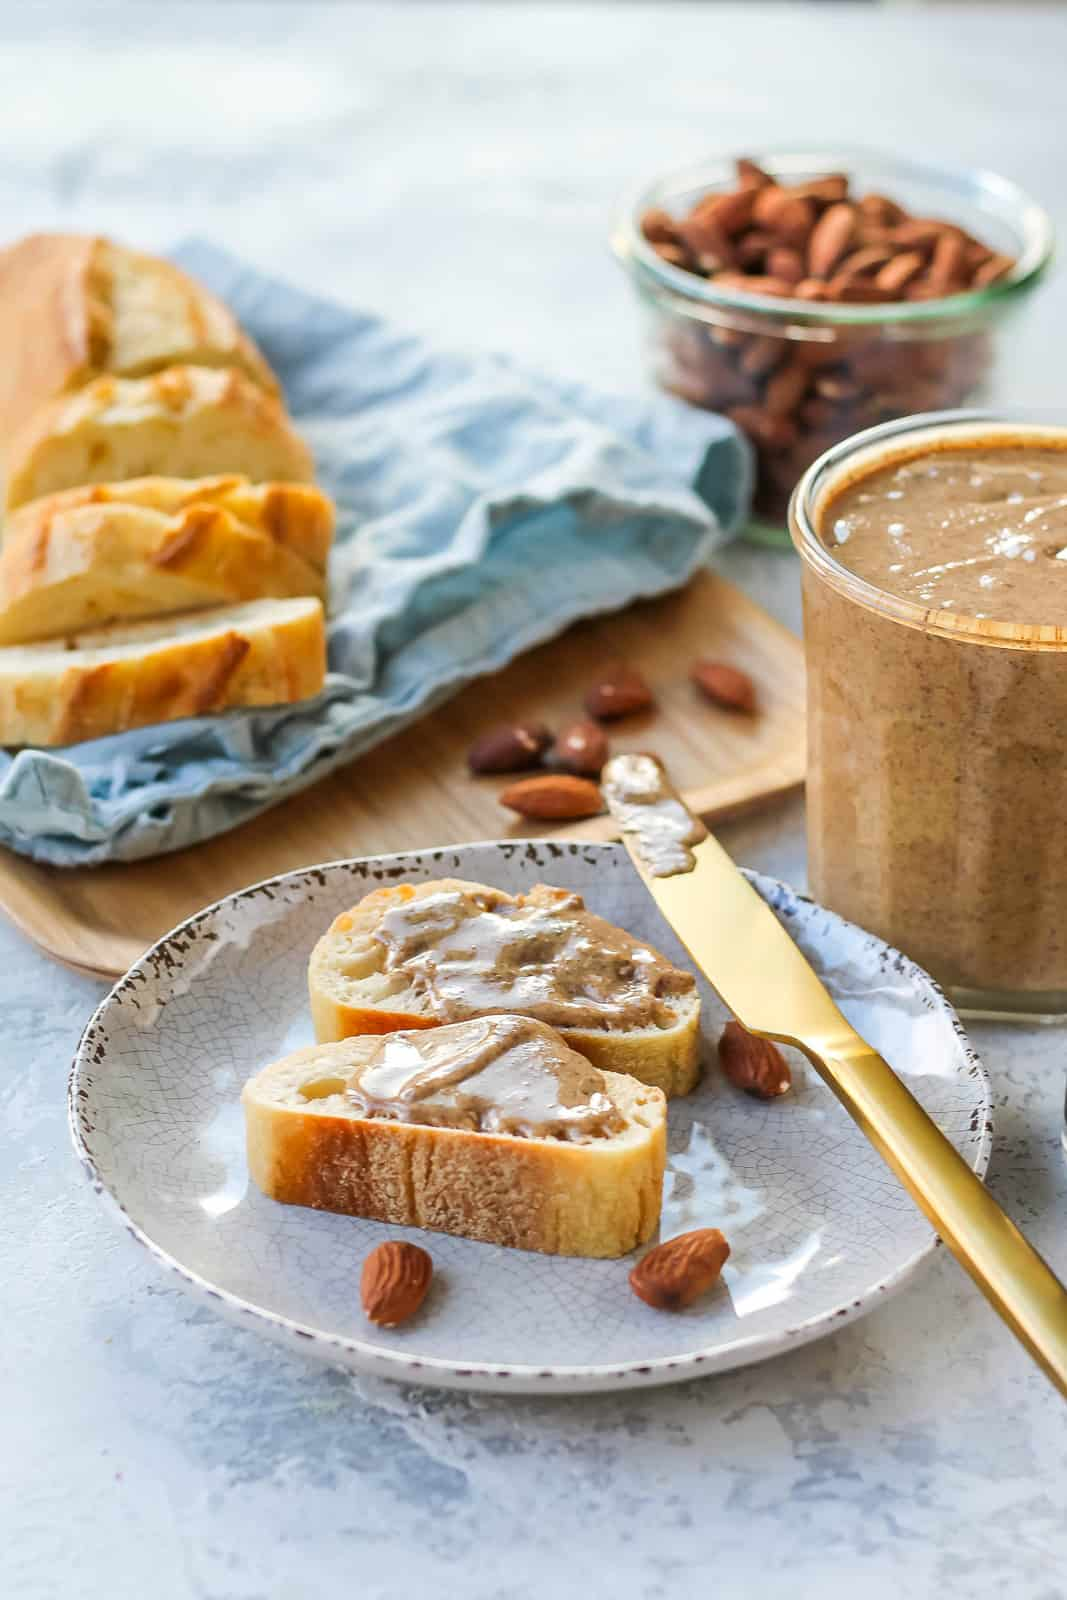 two slices of french bread spread with vanilla almond butter on a white plate with a gold knife on the side